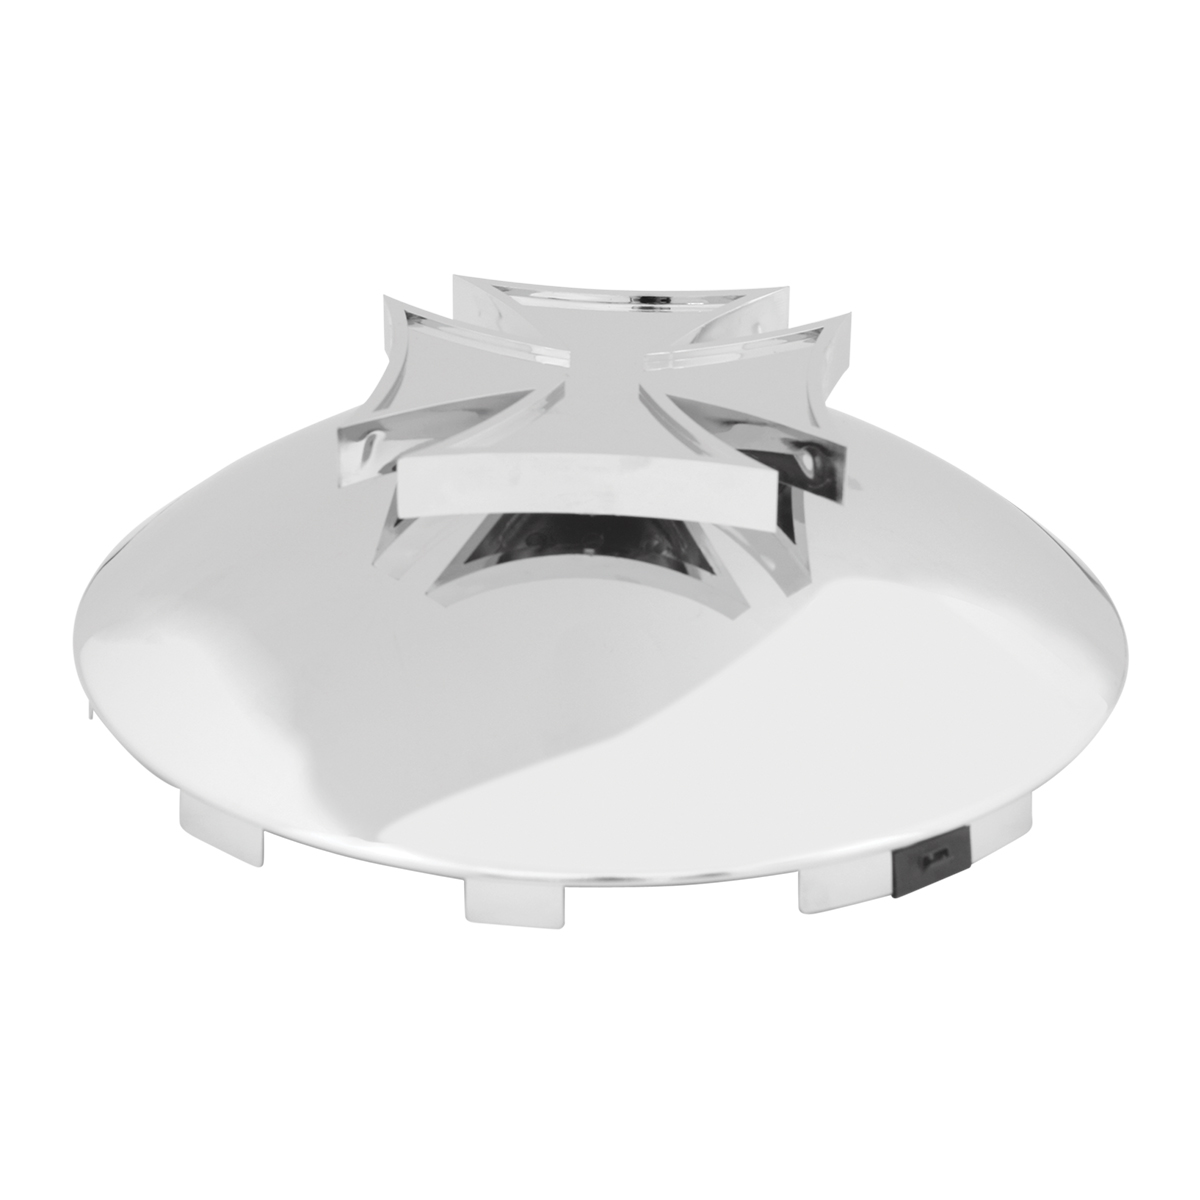 Universal Front Hub Cap with Cross Spinner - Angled View